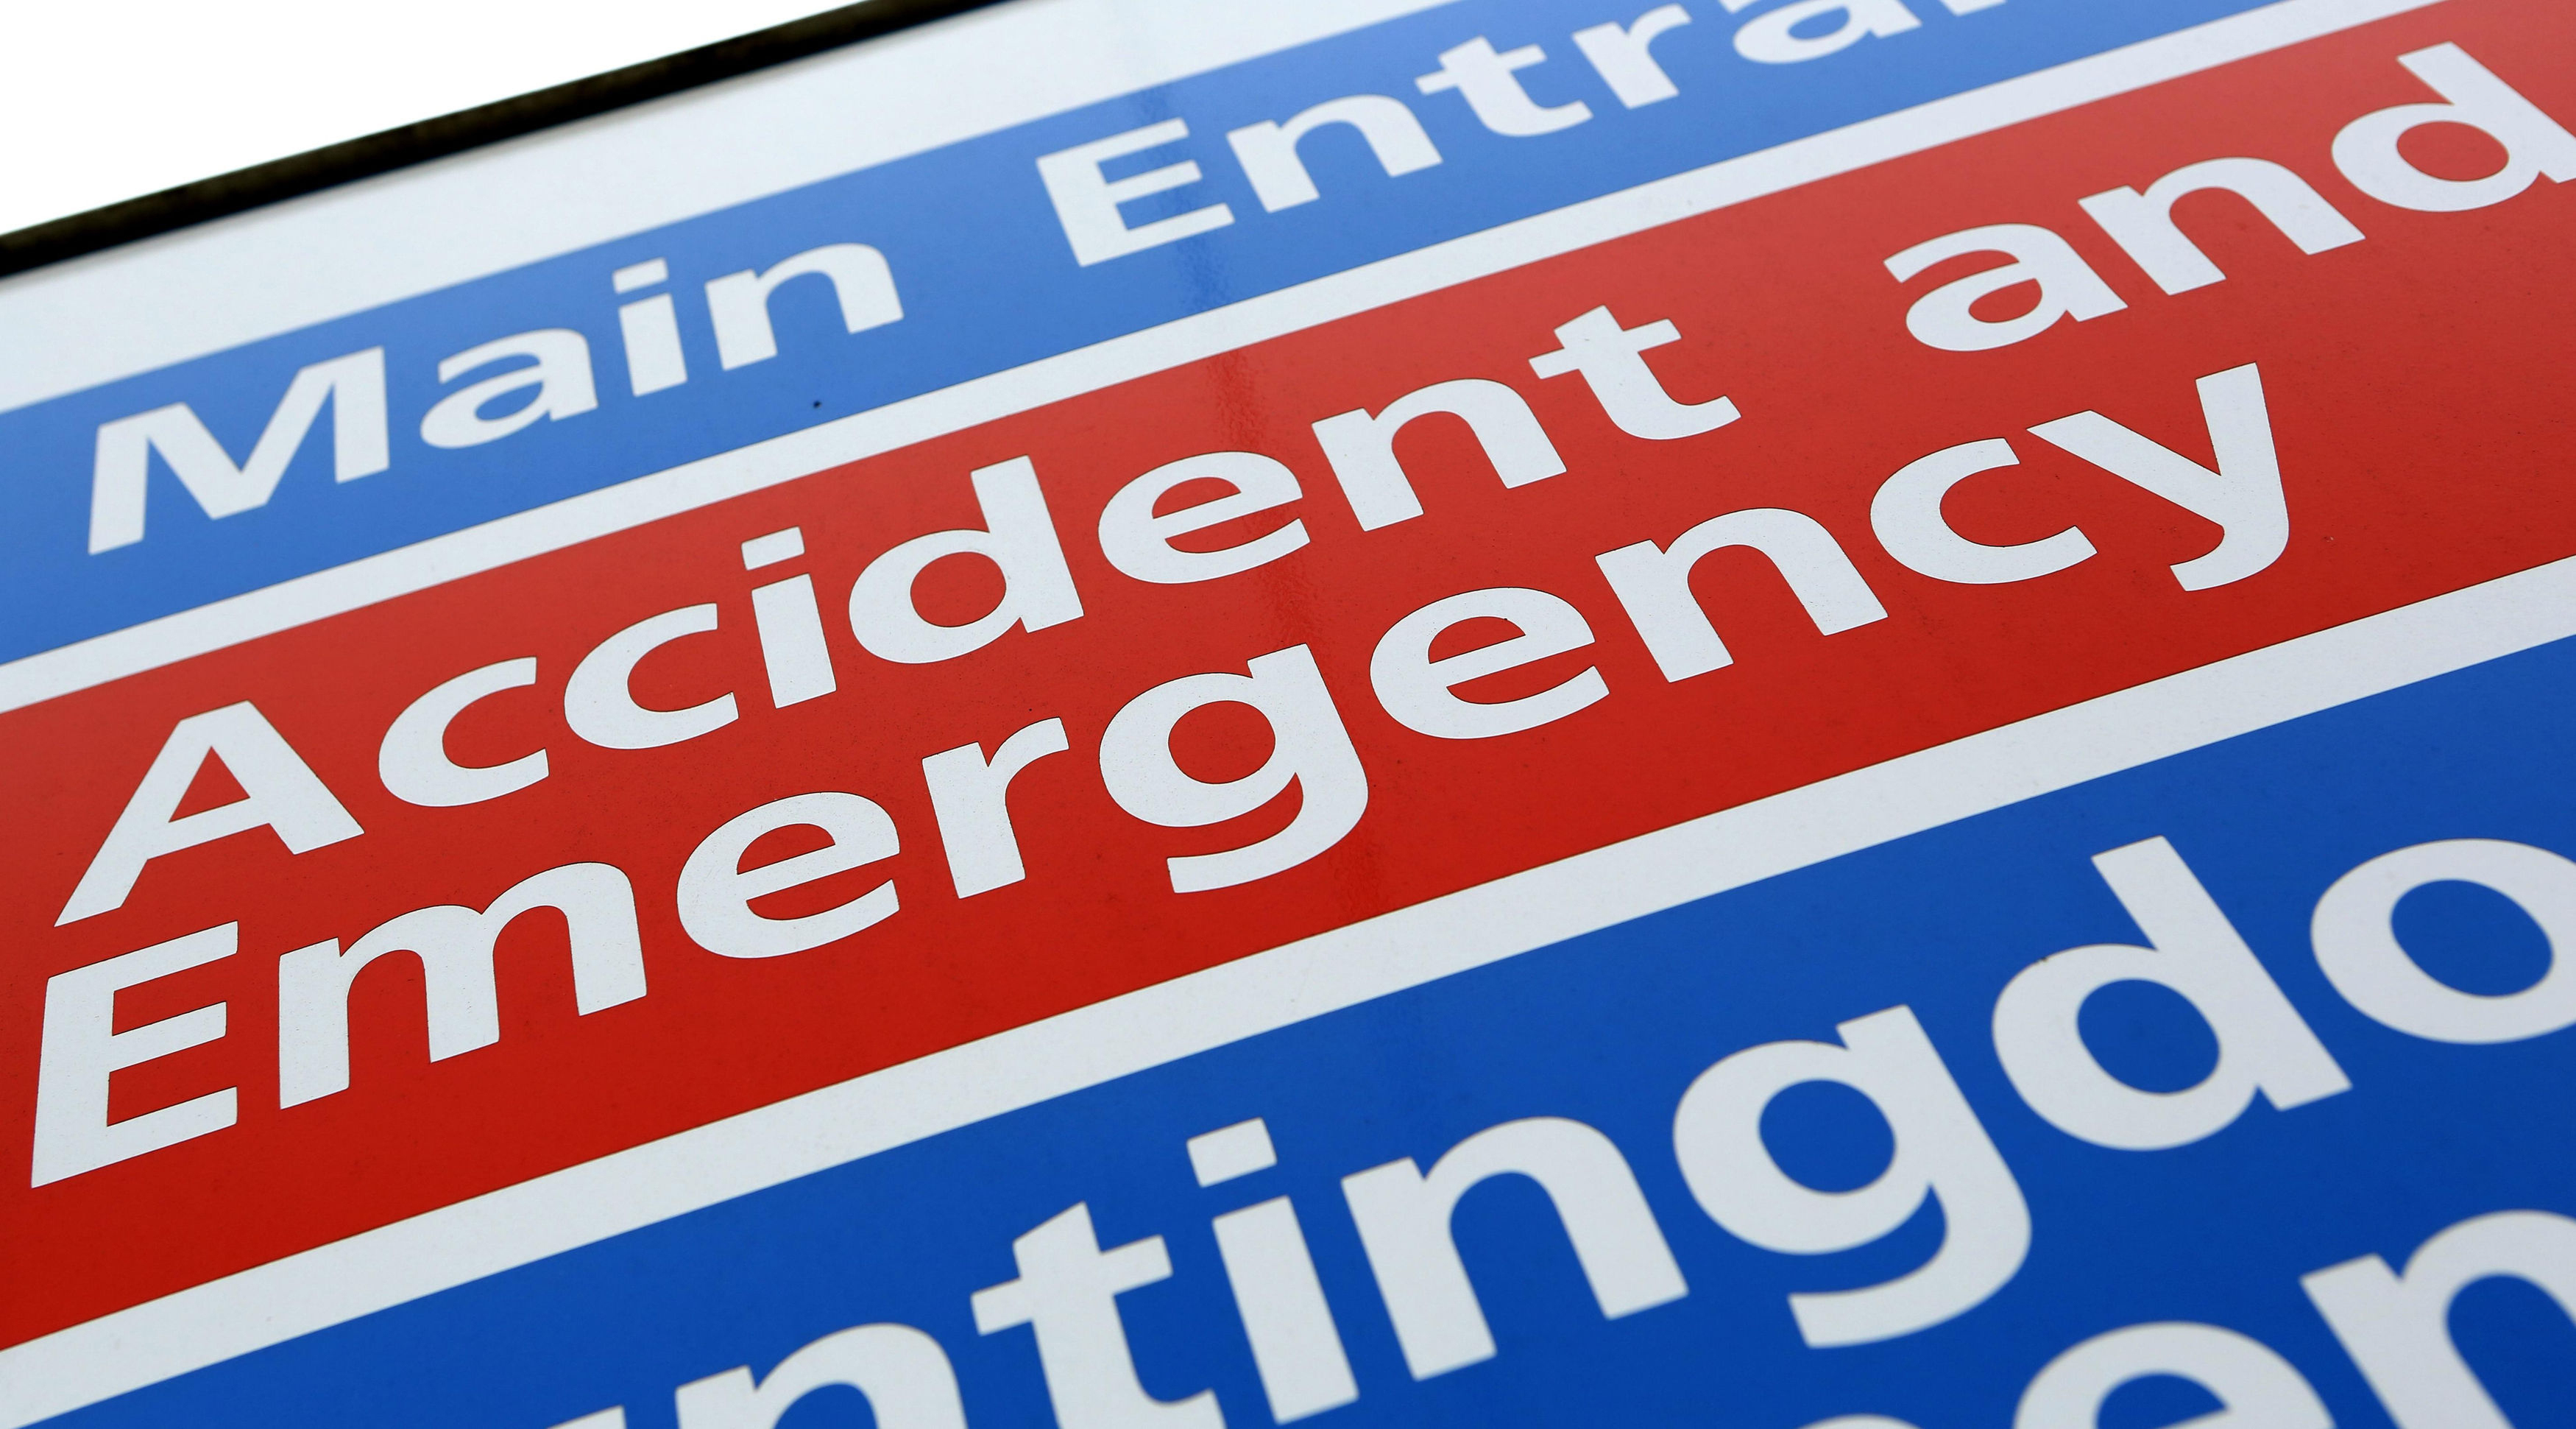 A&E waiting times in England hit worst-ever level